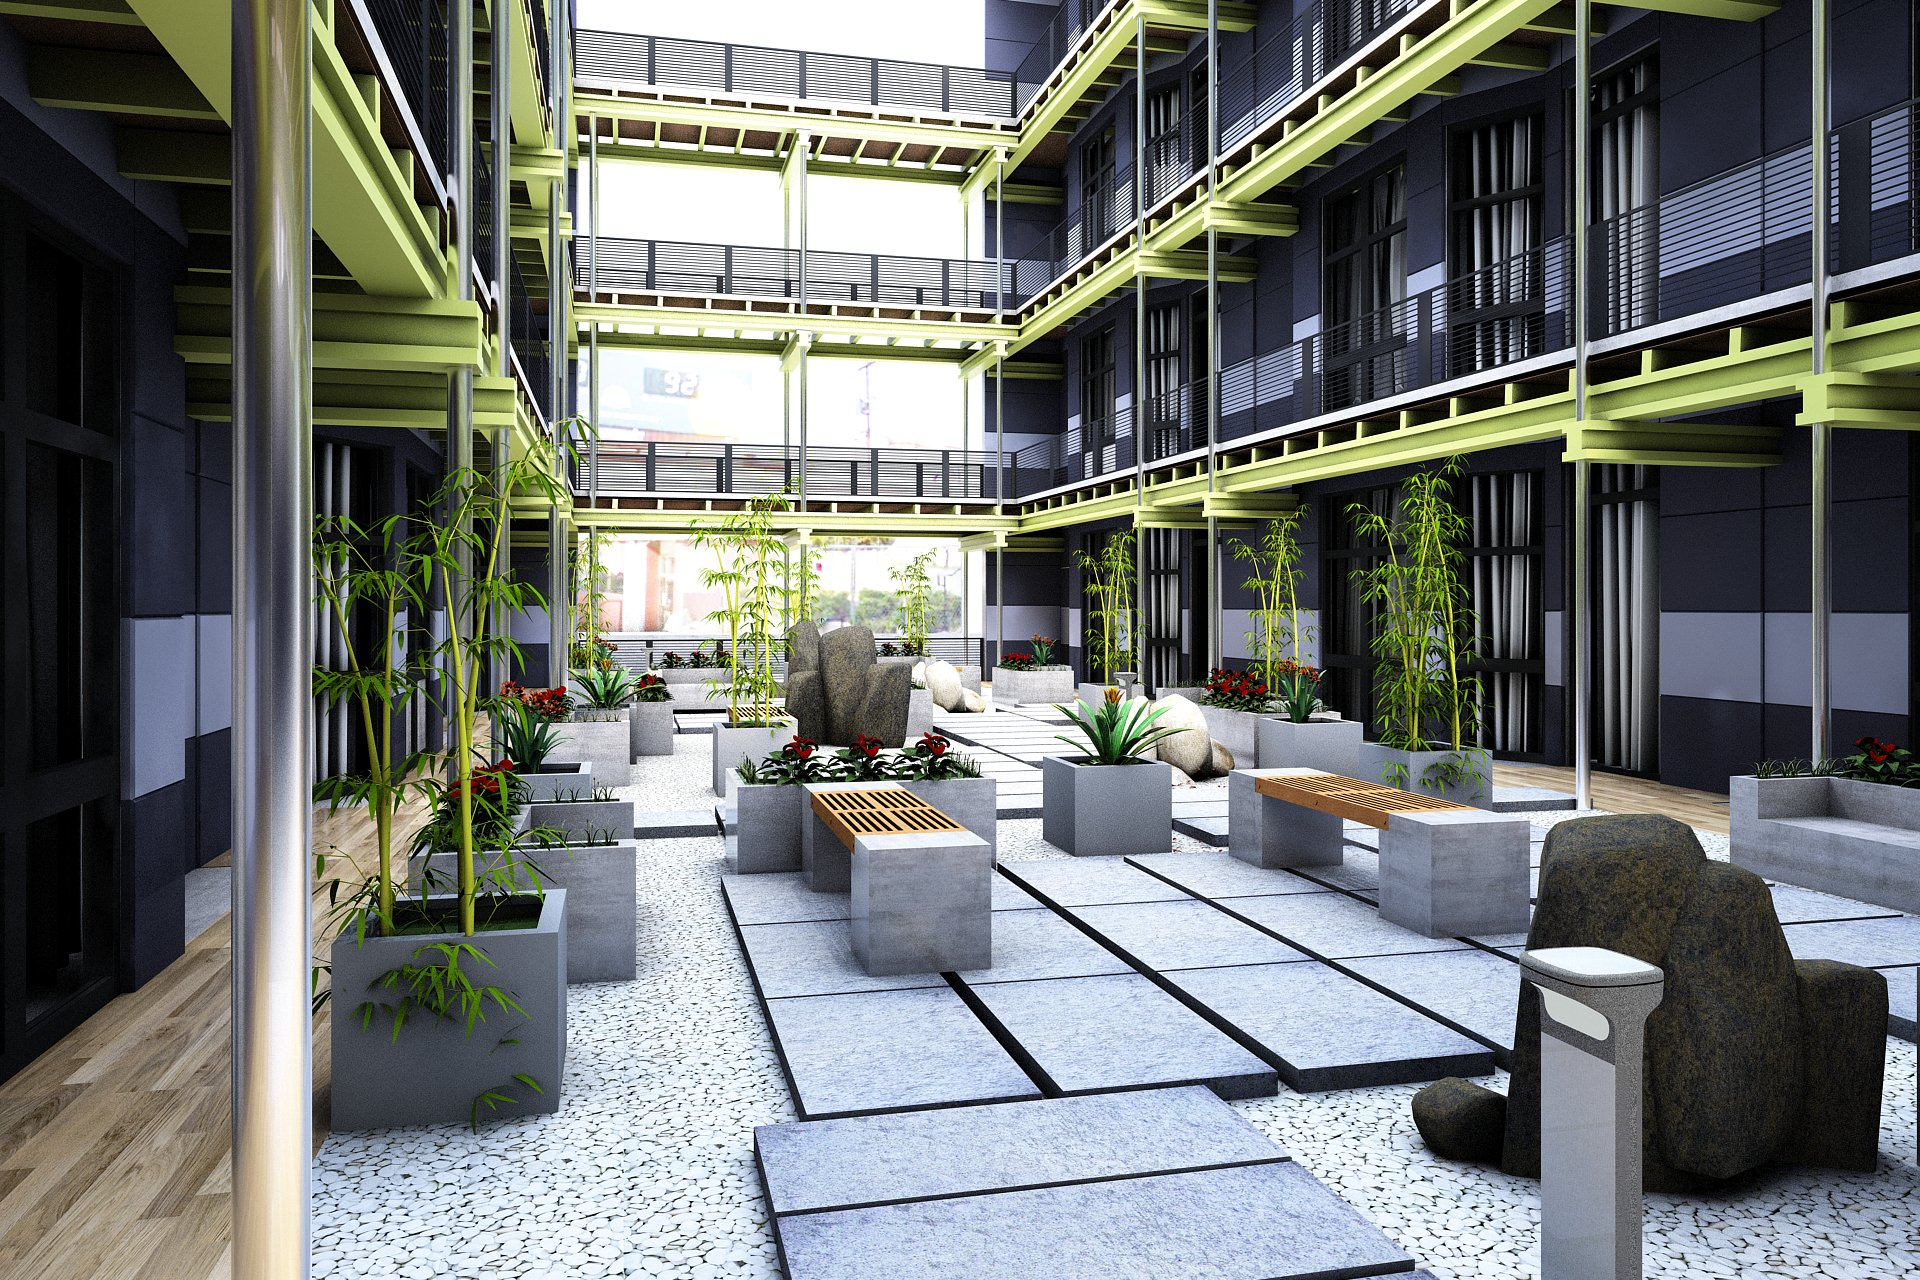 Courtyard rendering. For illustration purposes. Subject to change.